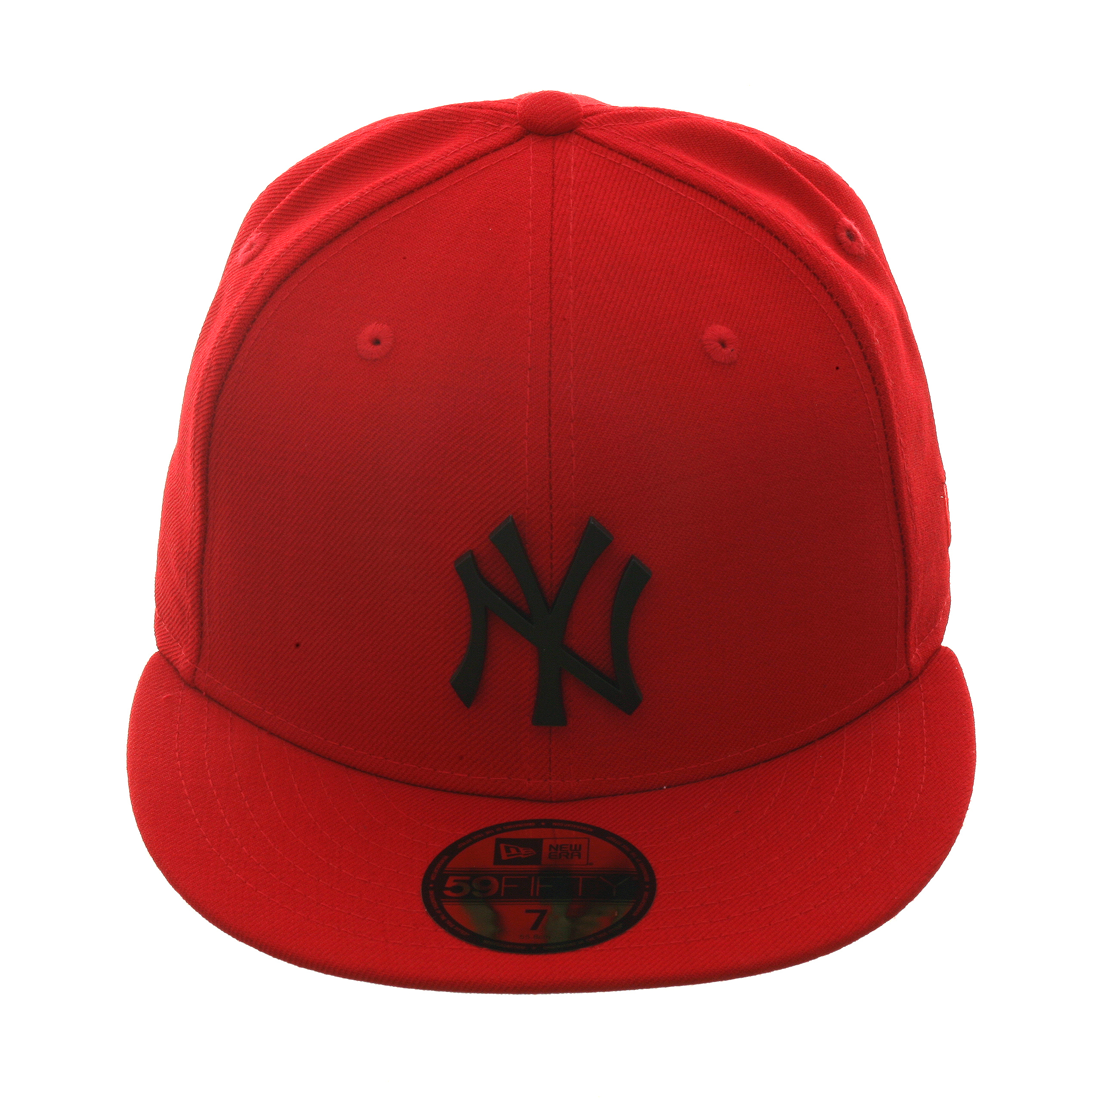 b9e70e99005 Exclusive New Era 59Fifty New York Yankees Matte Metal Hat - Red